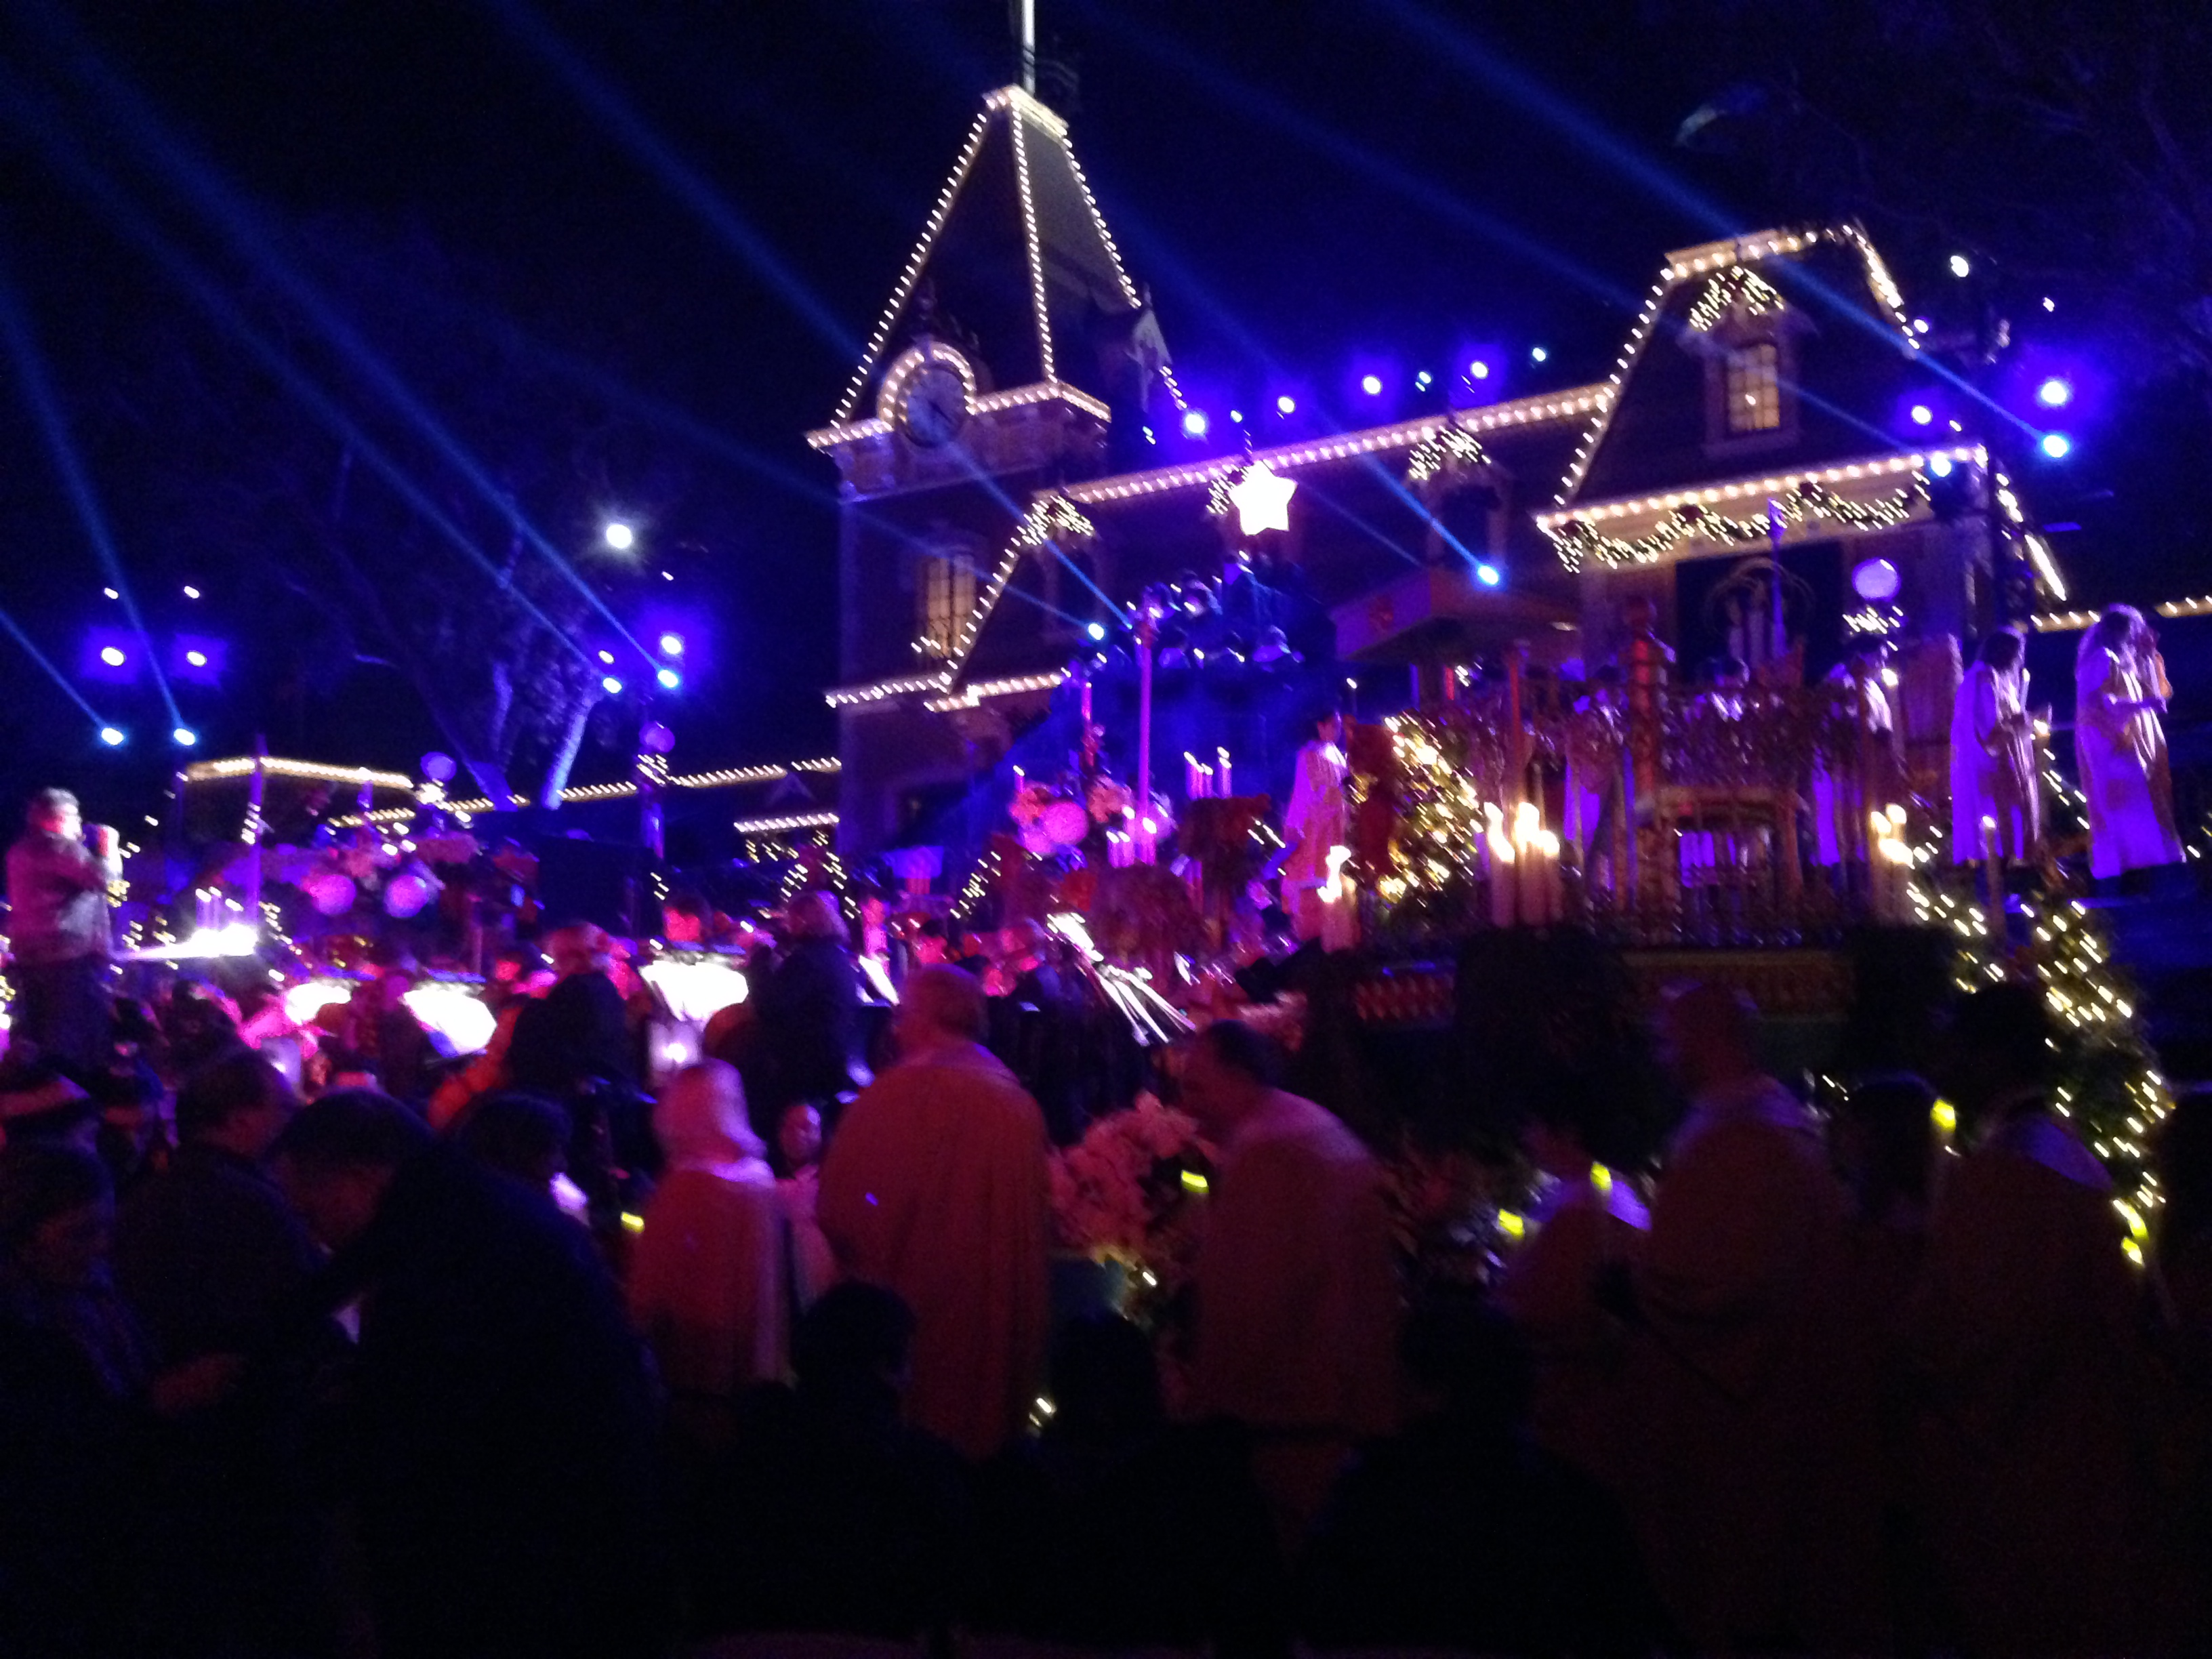 Pros And Cons Of Being A Signature Annual Passholder At